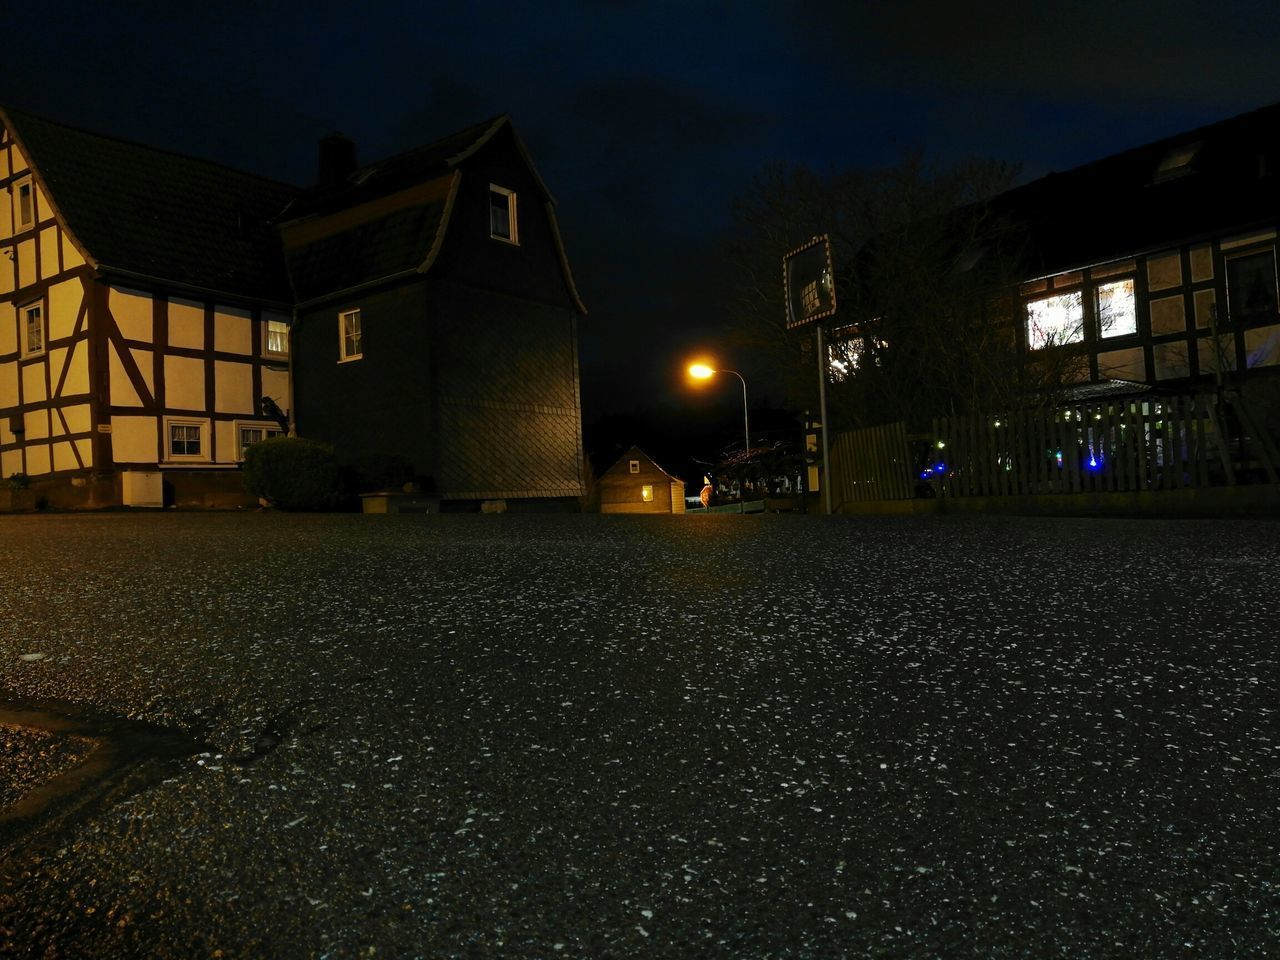 night, architecture, building exterior, built structure, illuminated, no people, house, outdoors, residential building, sky